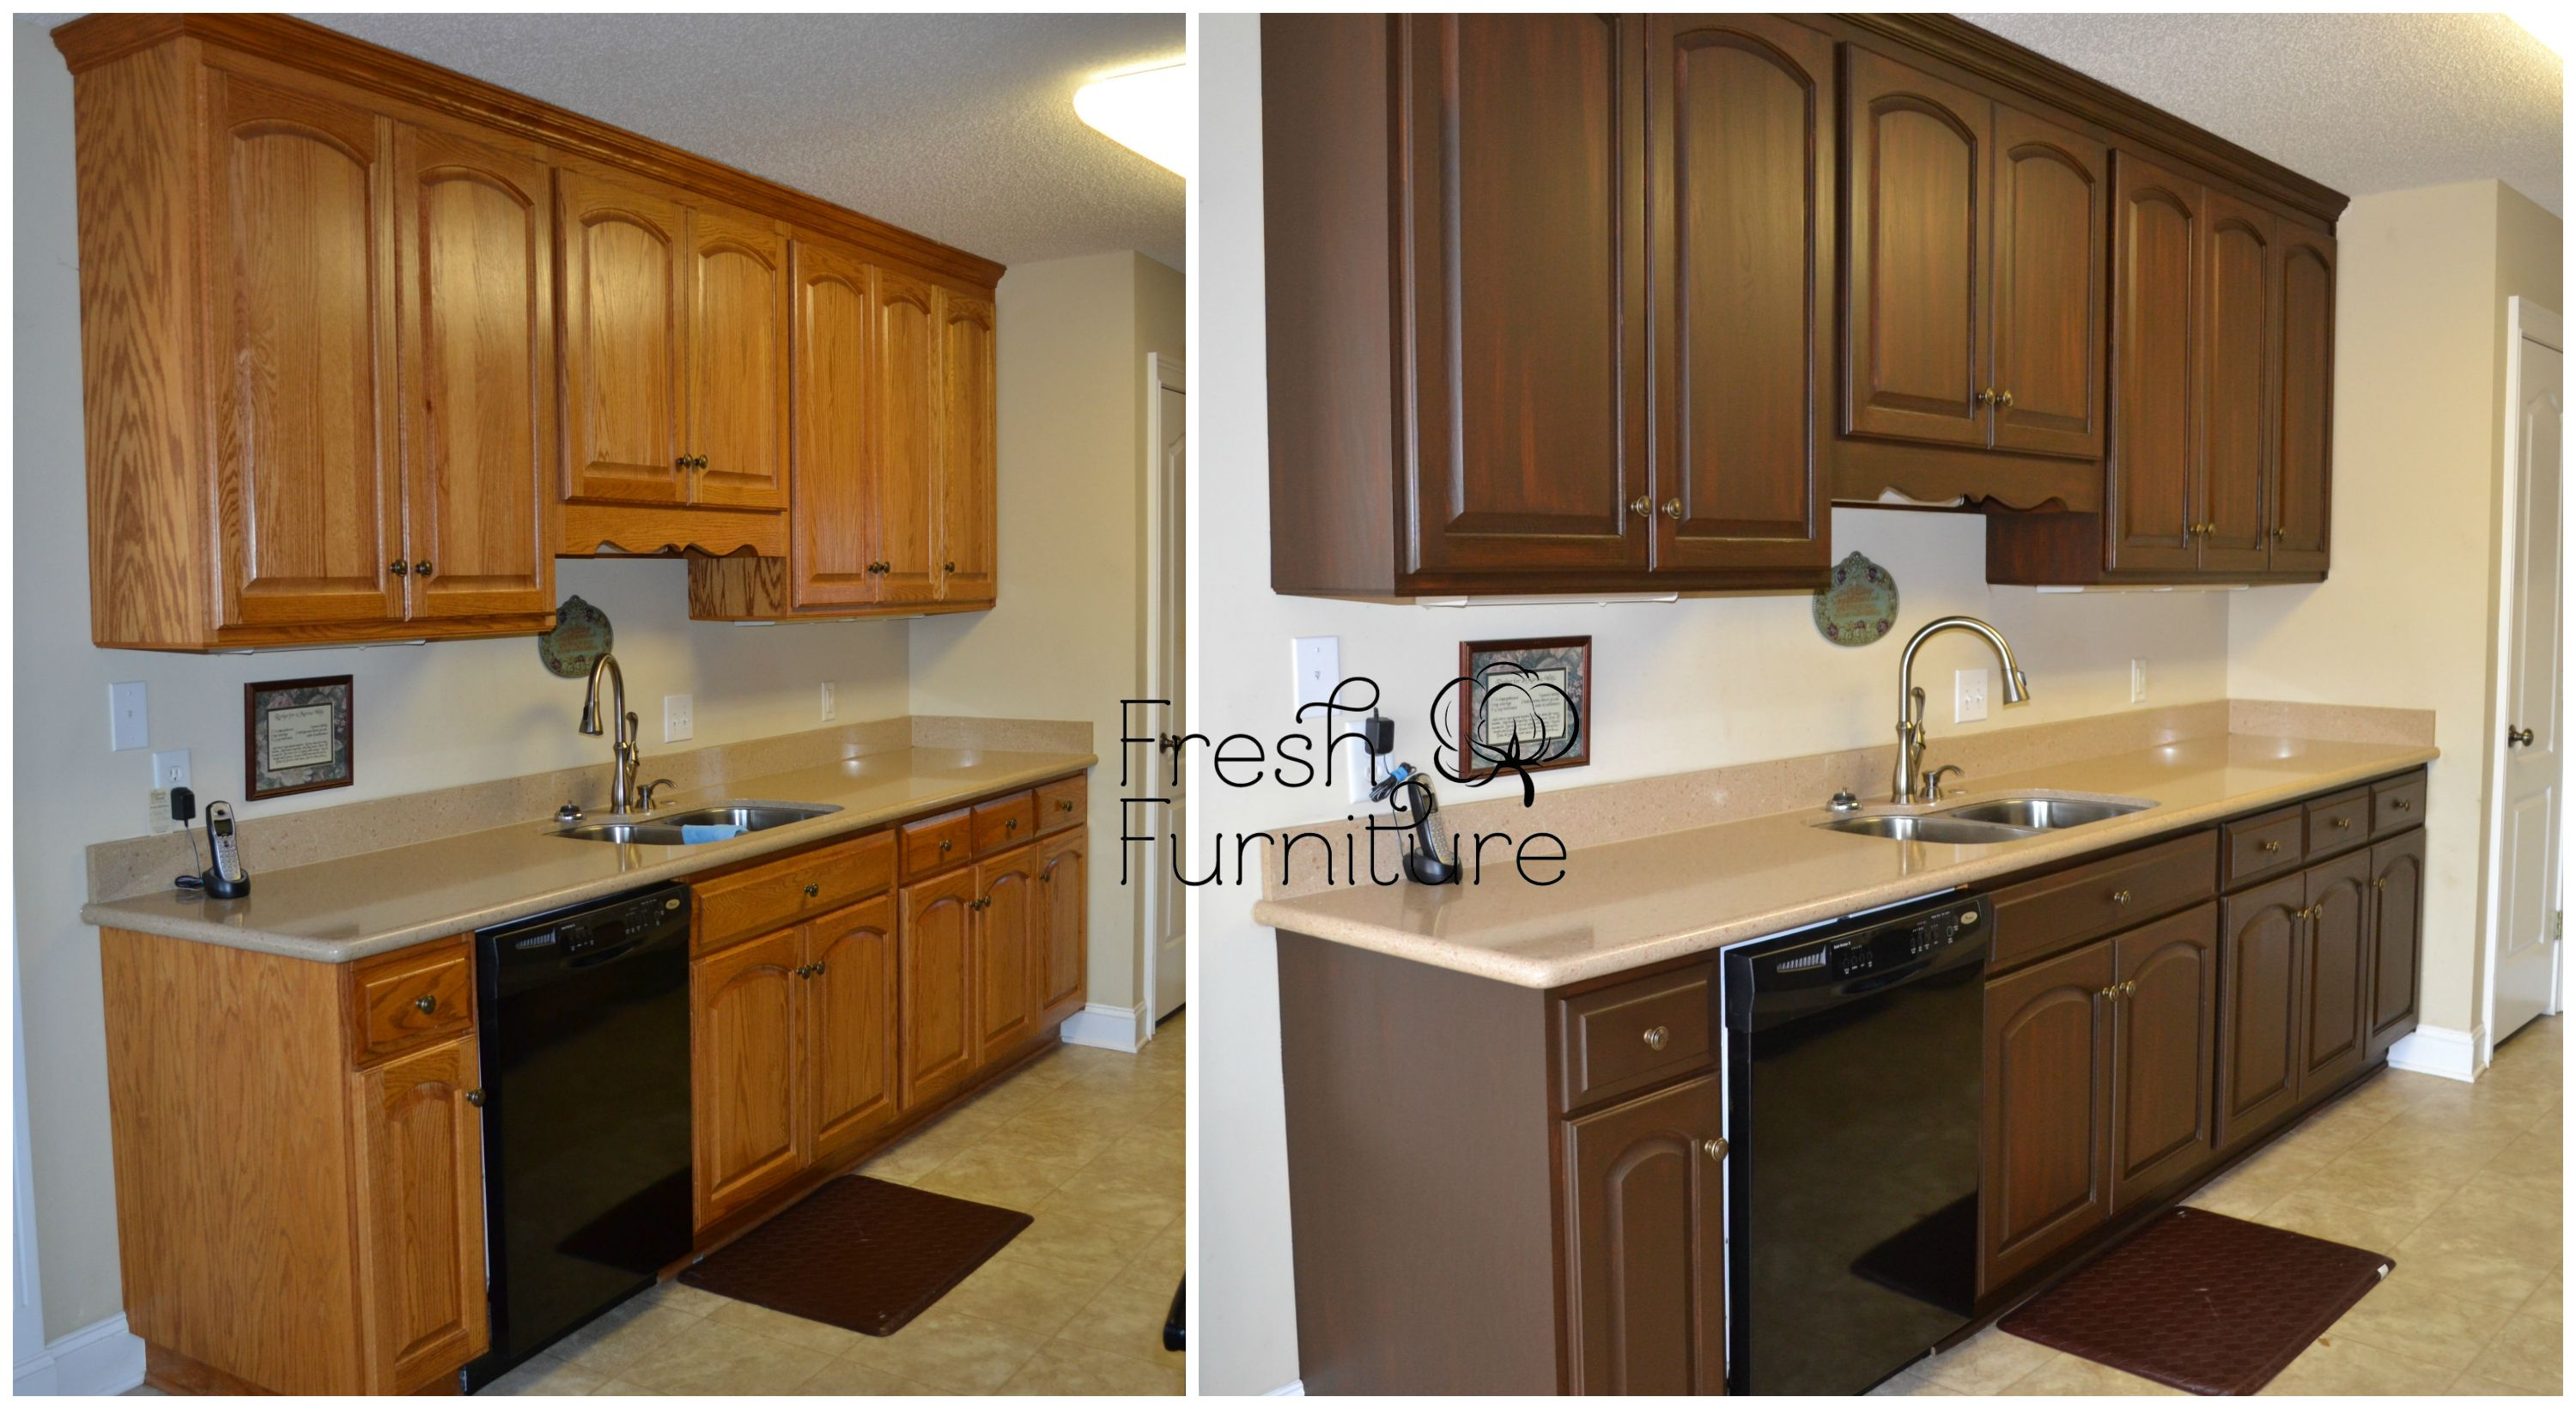 best wood stain for kitchen cabinets delta touchless faucet oak cabinet makeover with general finishes antique walnut